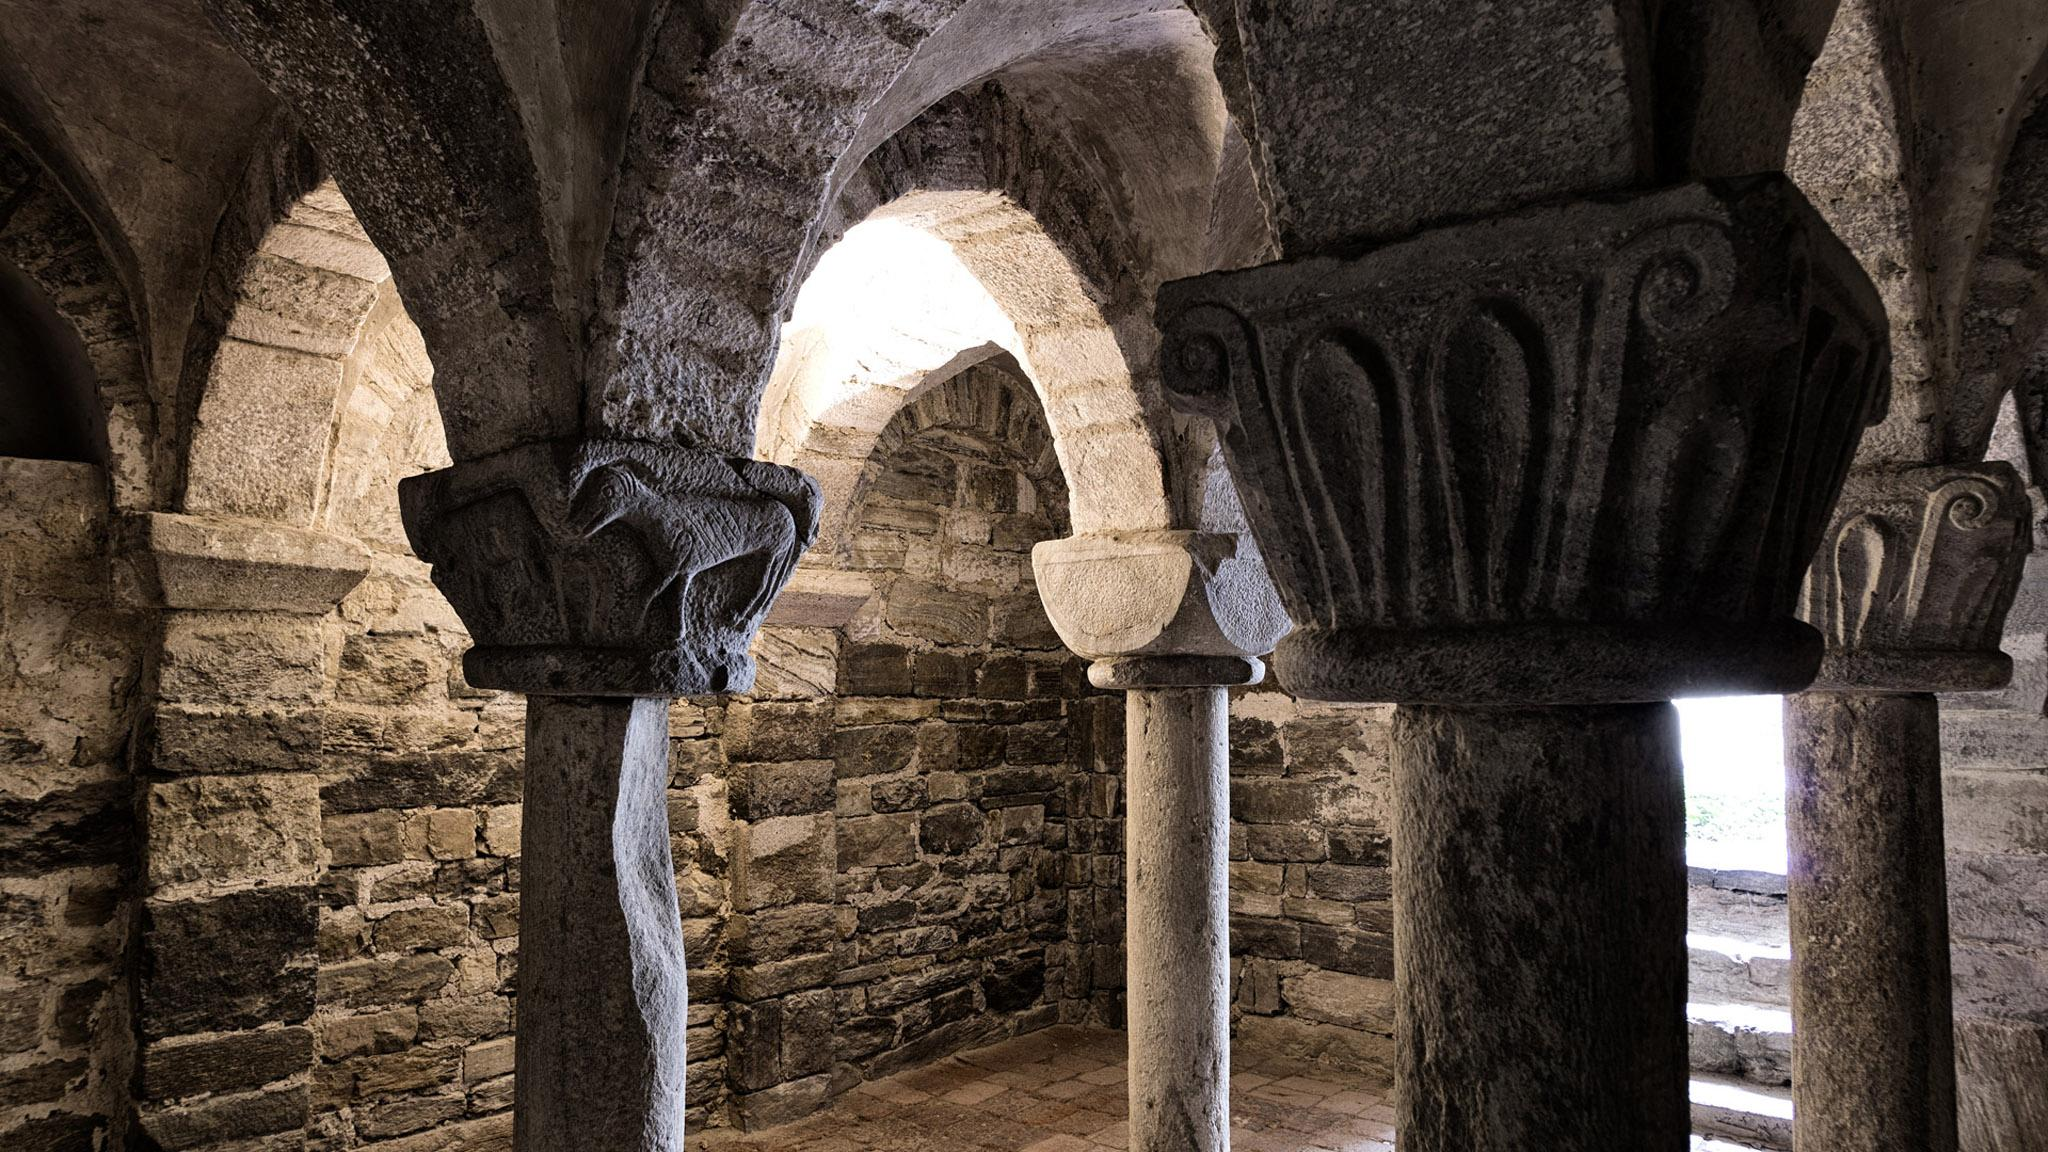 Wachau is full of hidden gems, like the Romanesque crypt of the castle chapel of Oberranna. – © Konstantin Gona